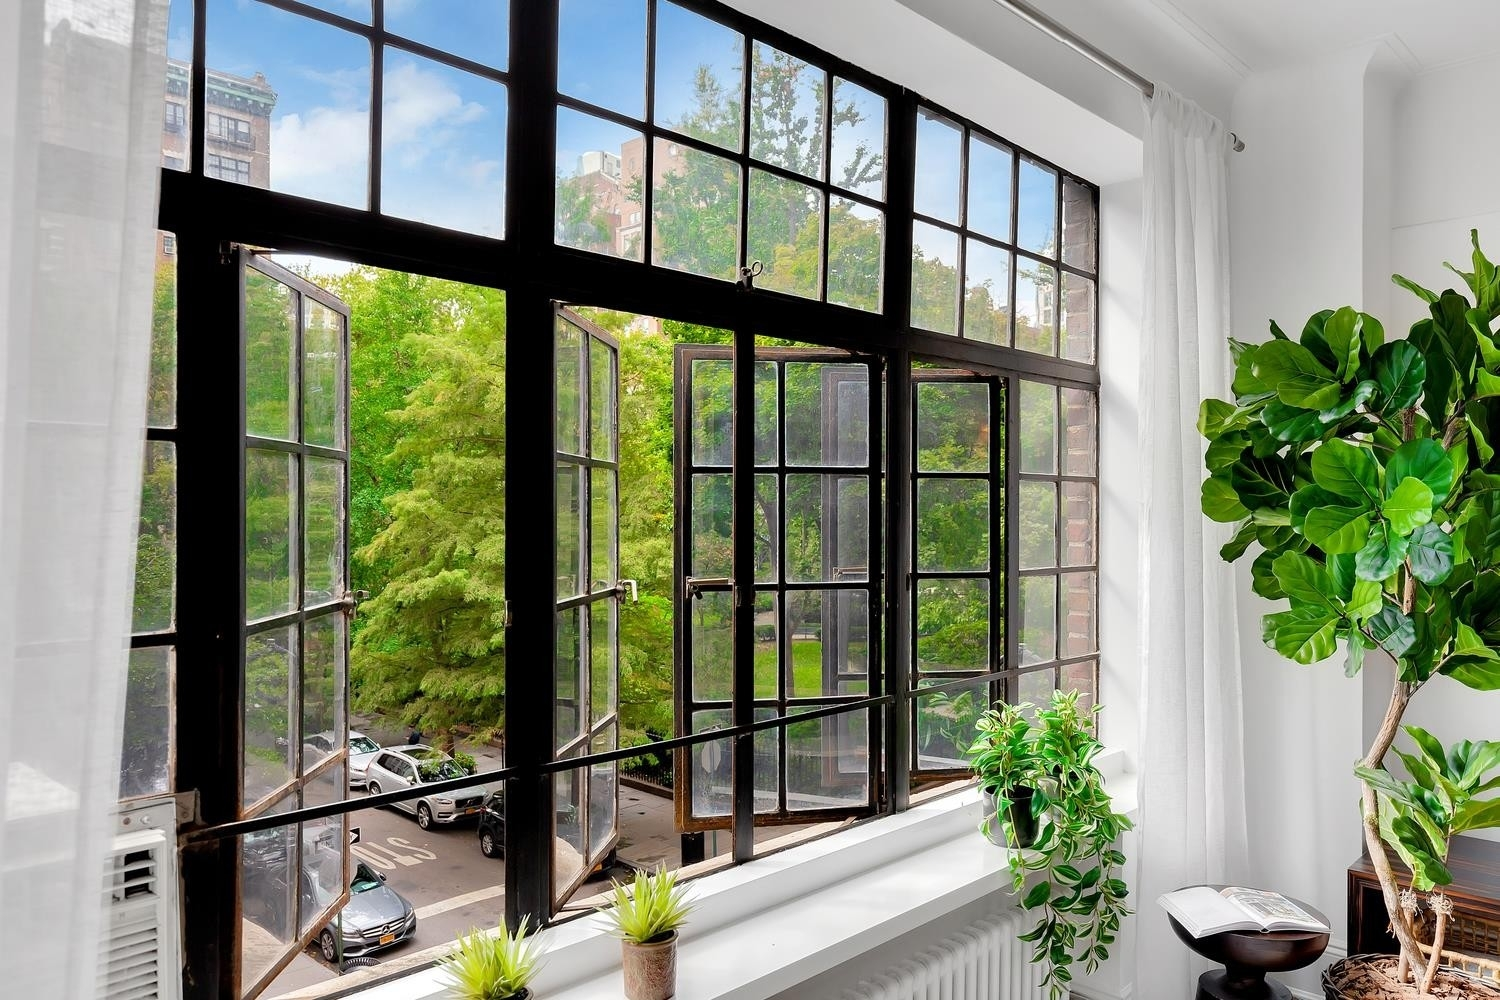 1. Co-op Properties for Sale at GRAMERCY OWNERS LTD, 44 GRAMERCY PARK N, 4C Gramercy Park, New York, NY 10010